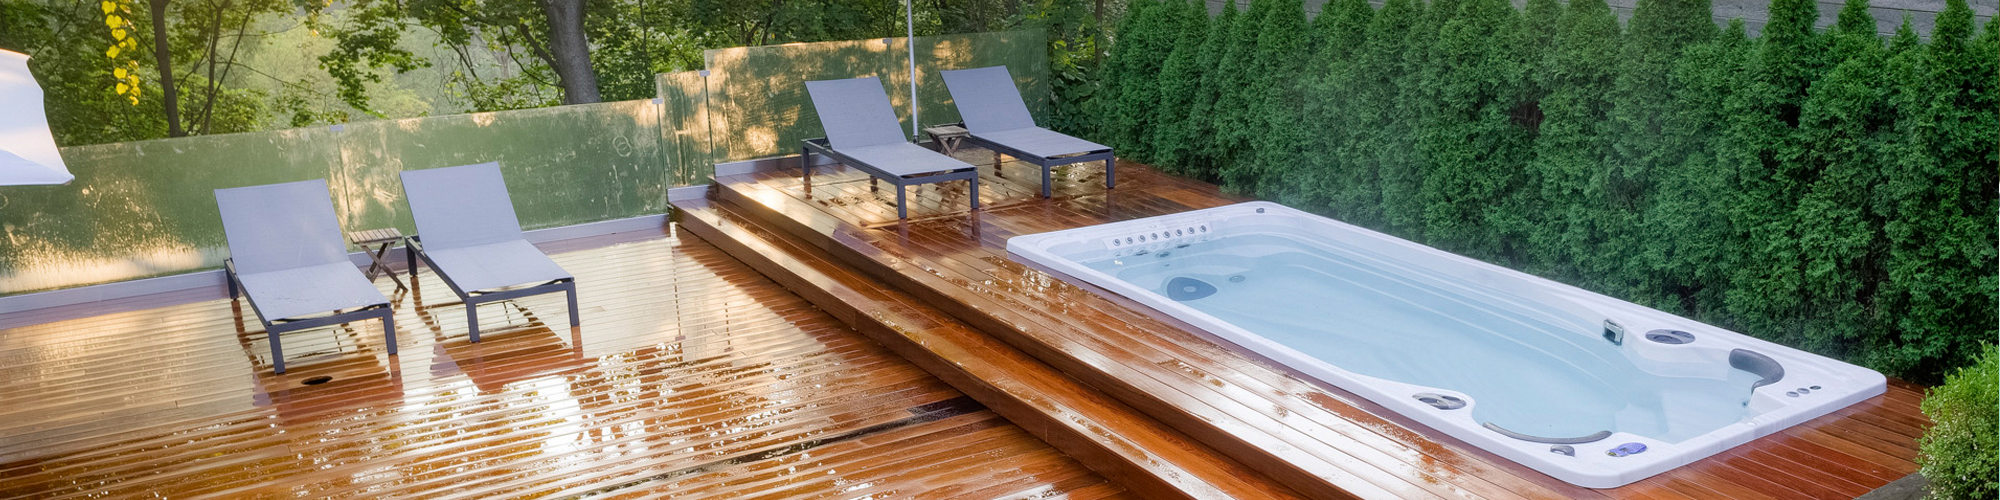 Hydropool Swim Spas Spring Dance Hot Tubs